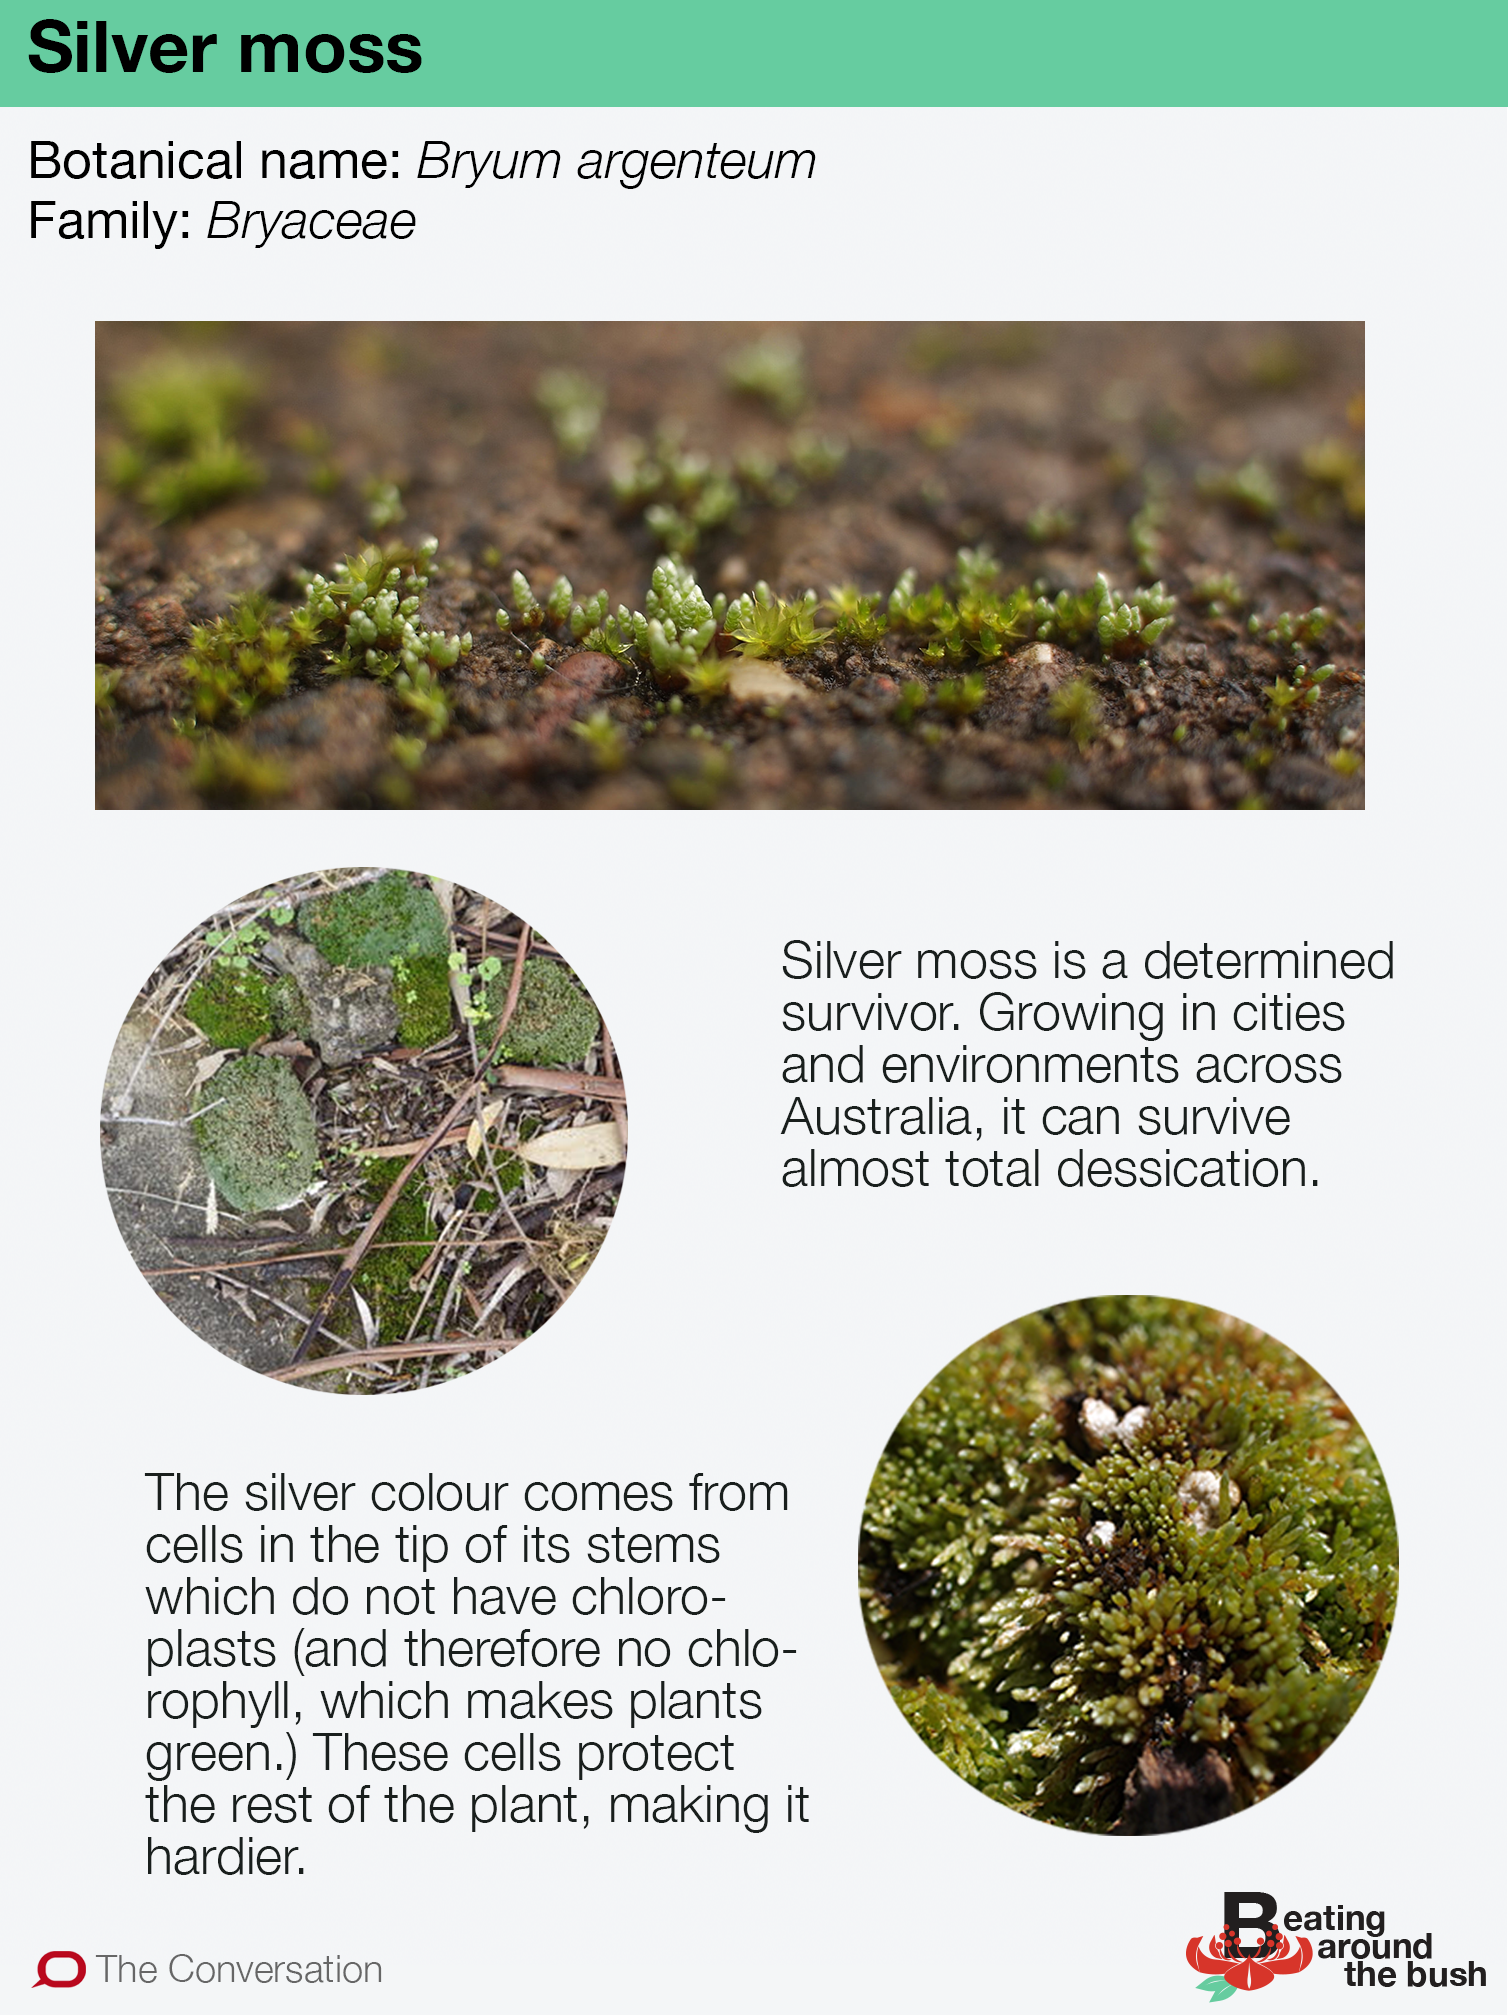 Silver moss is a rugged survivor in the city landscape